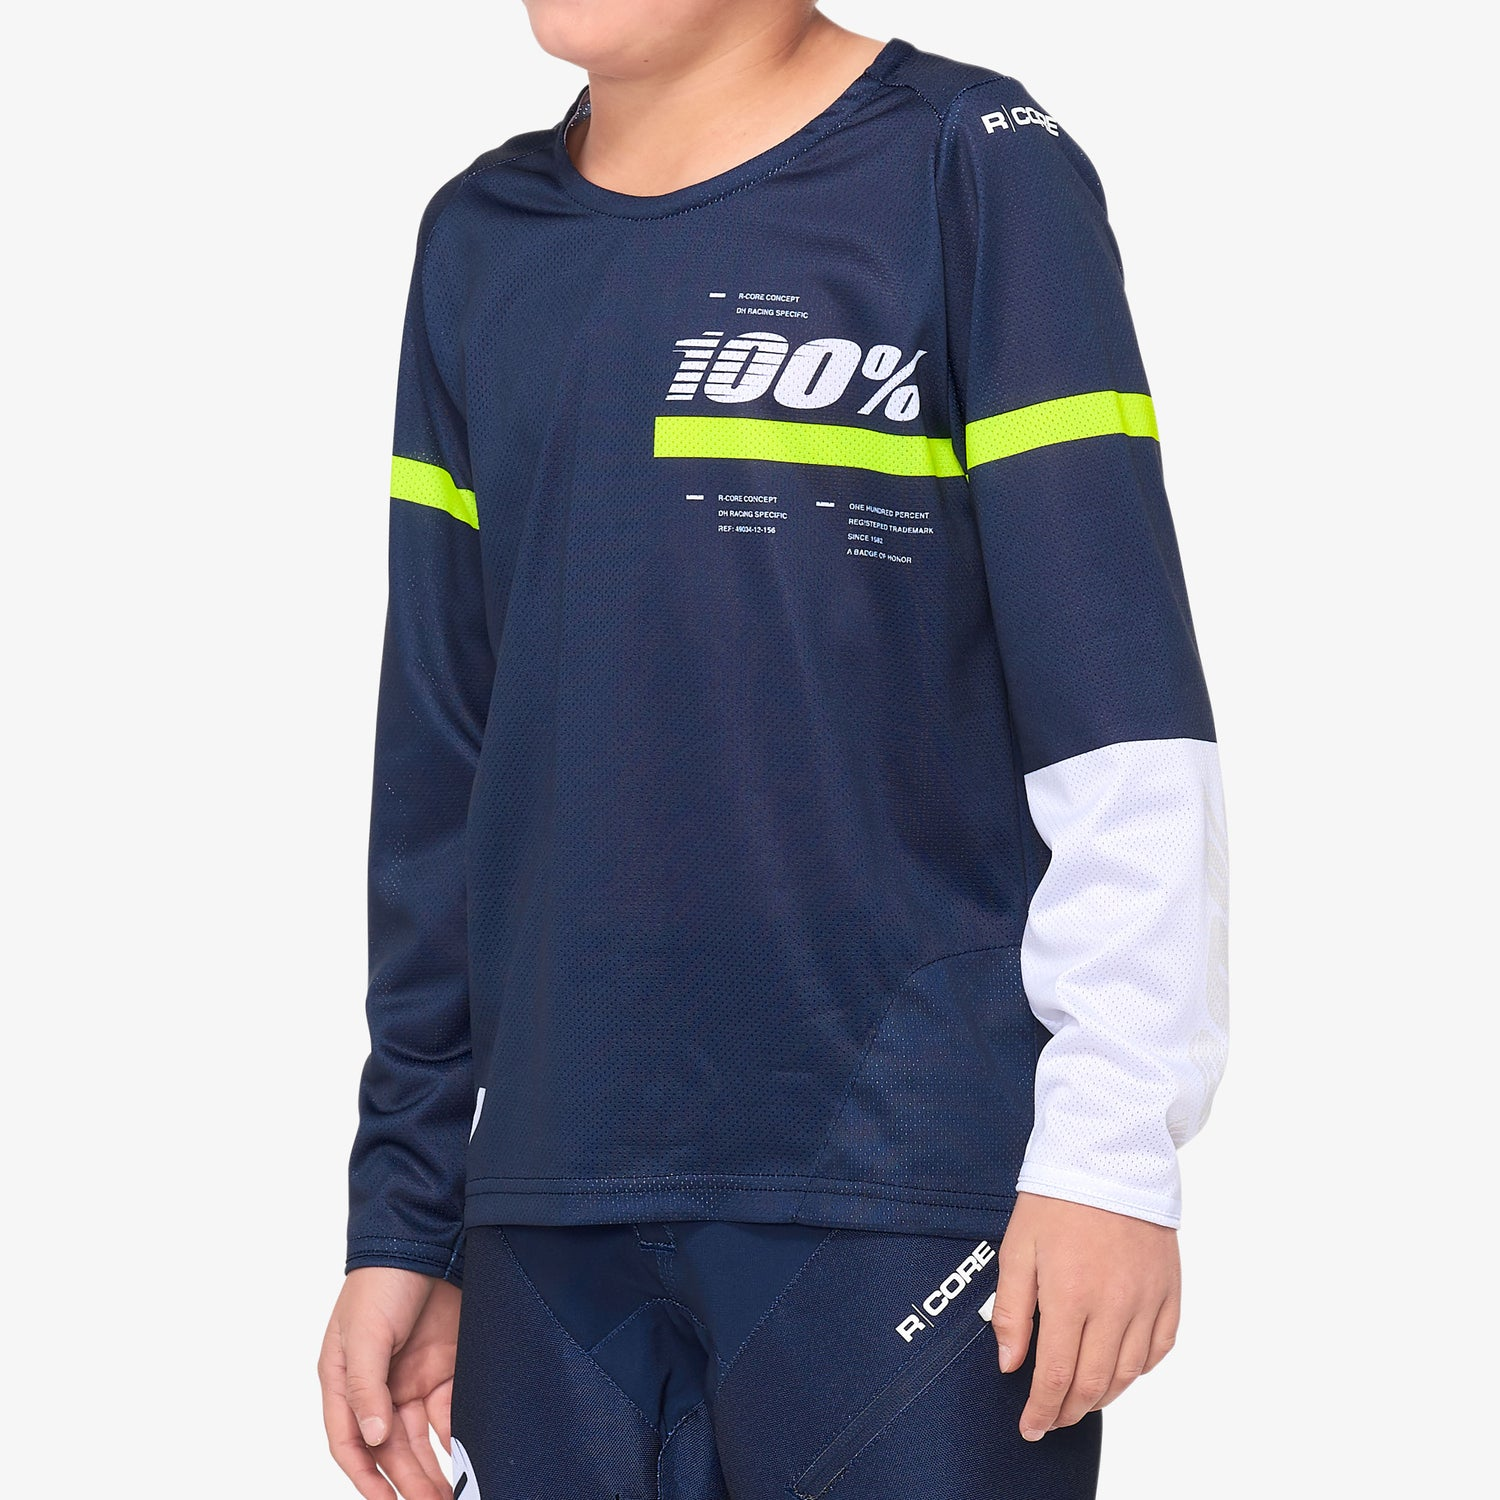 R-CORE Youth Jersey Dark Blue/Yellow